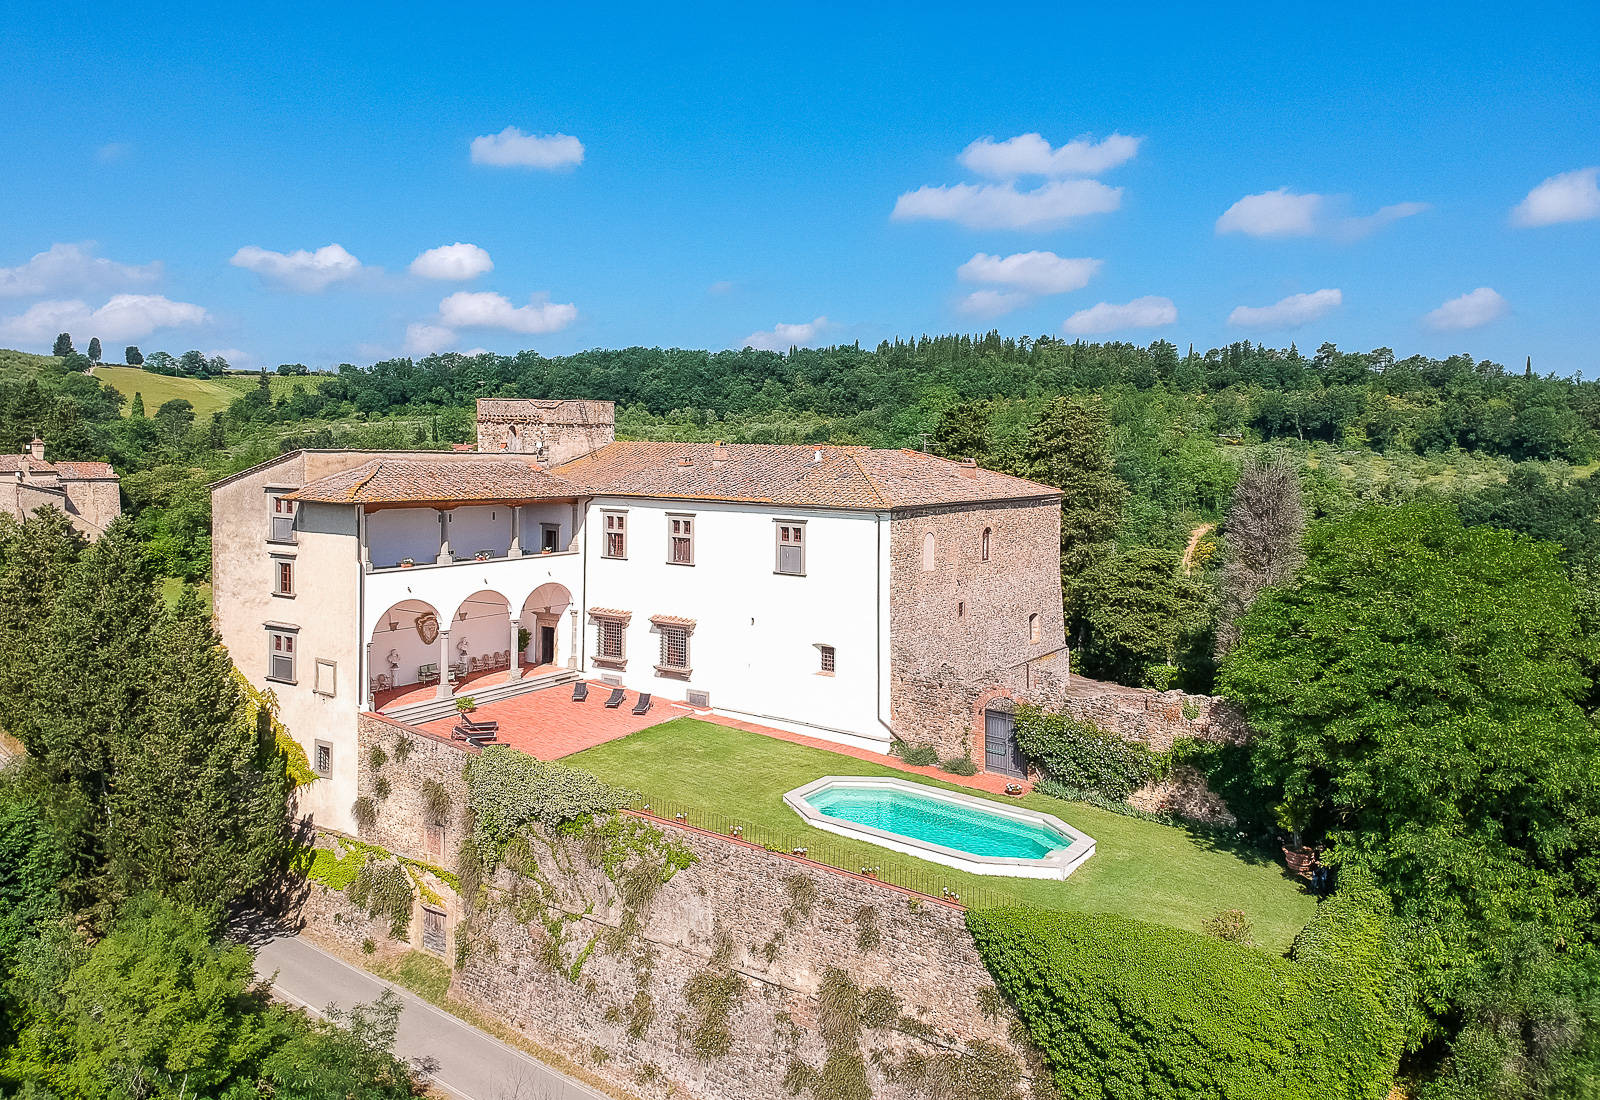 prestigious_real_estate_in_italy?id=2021